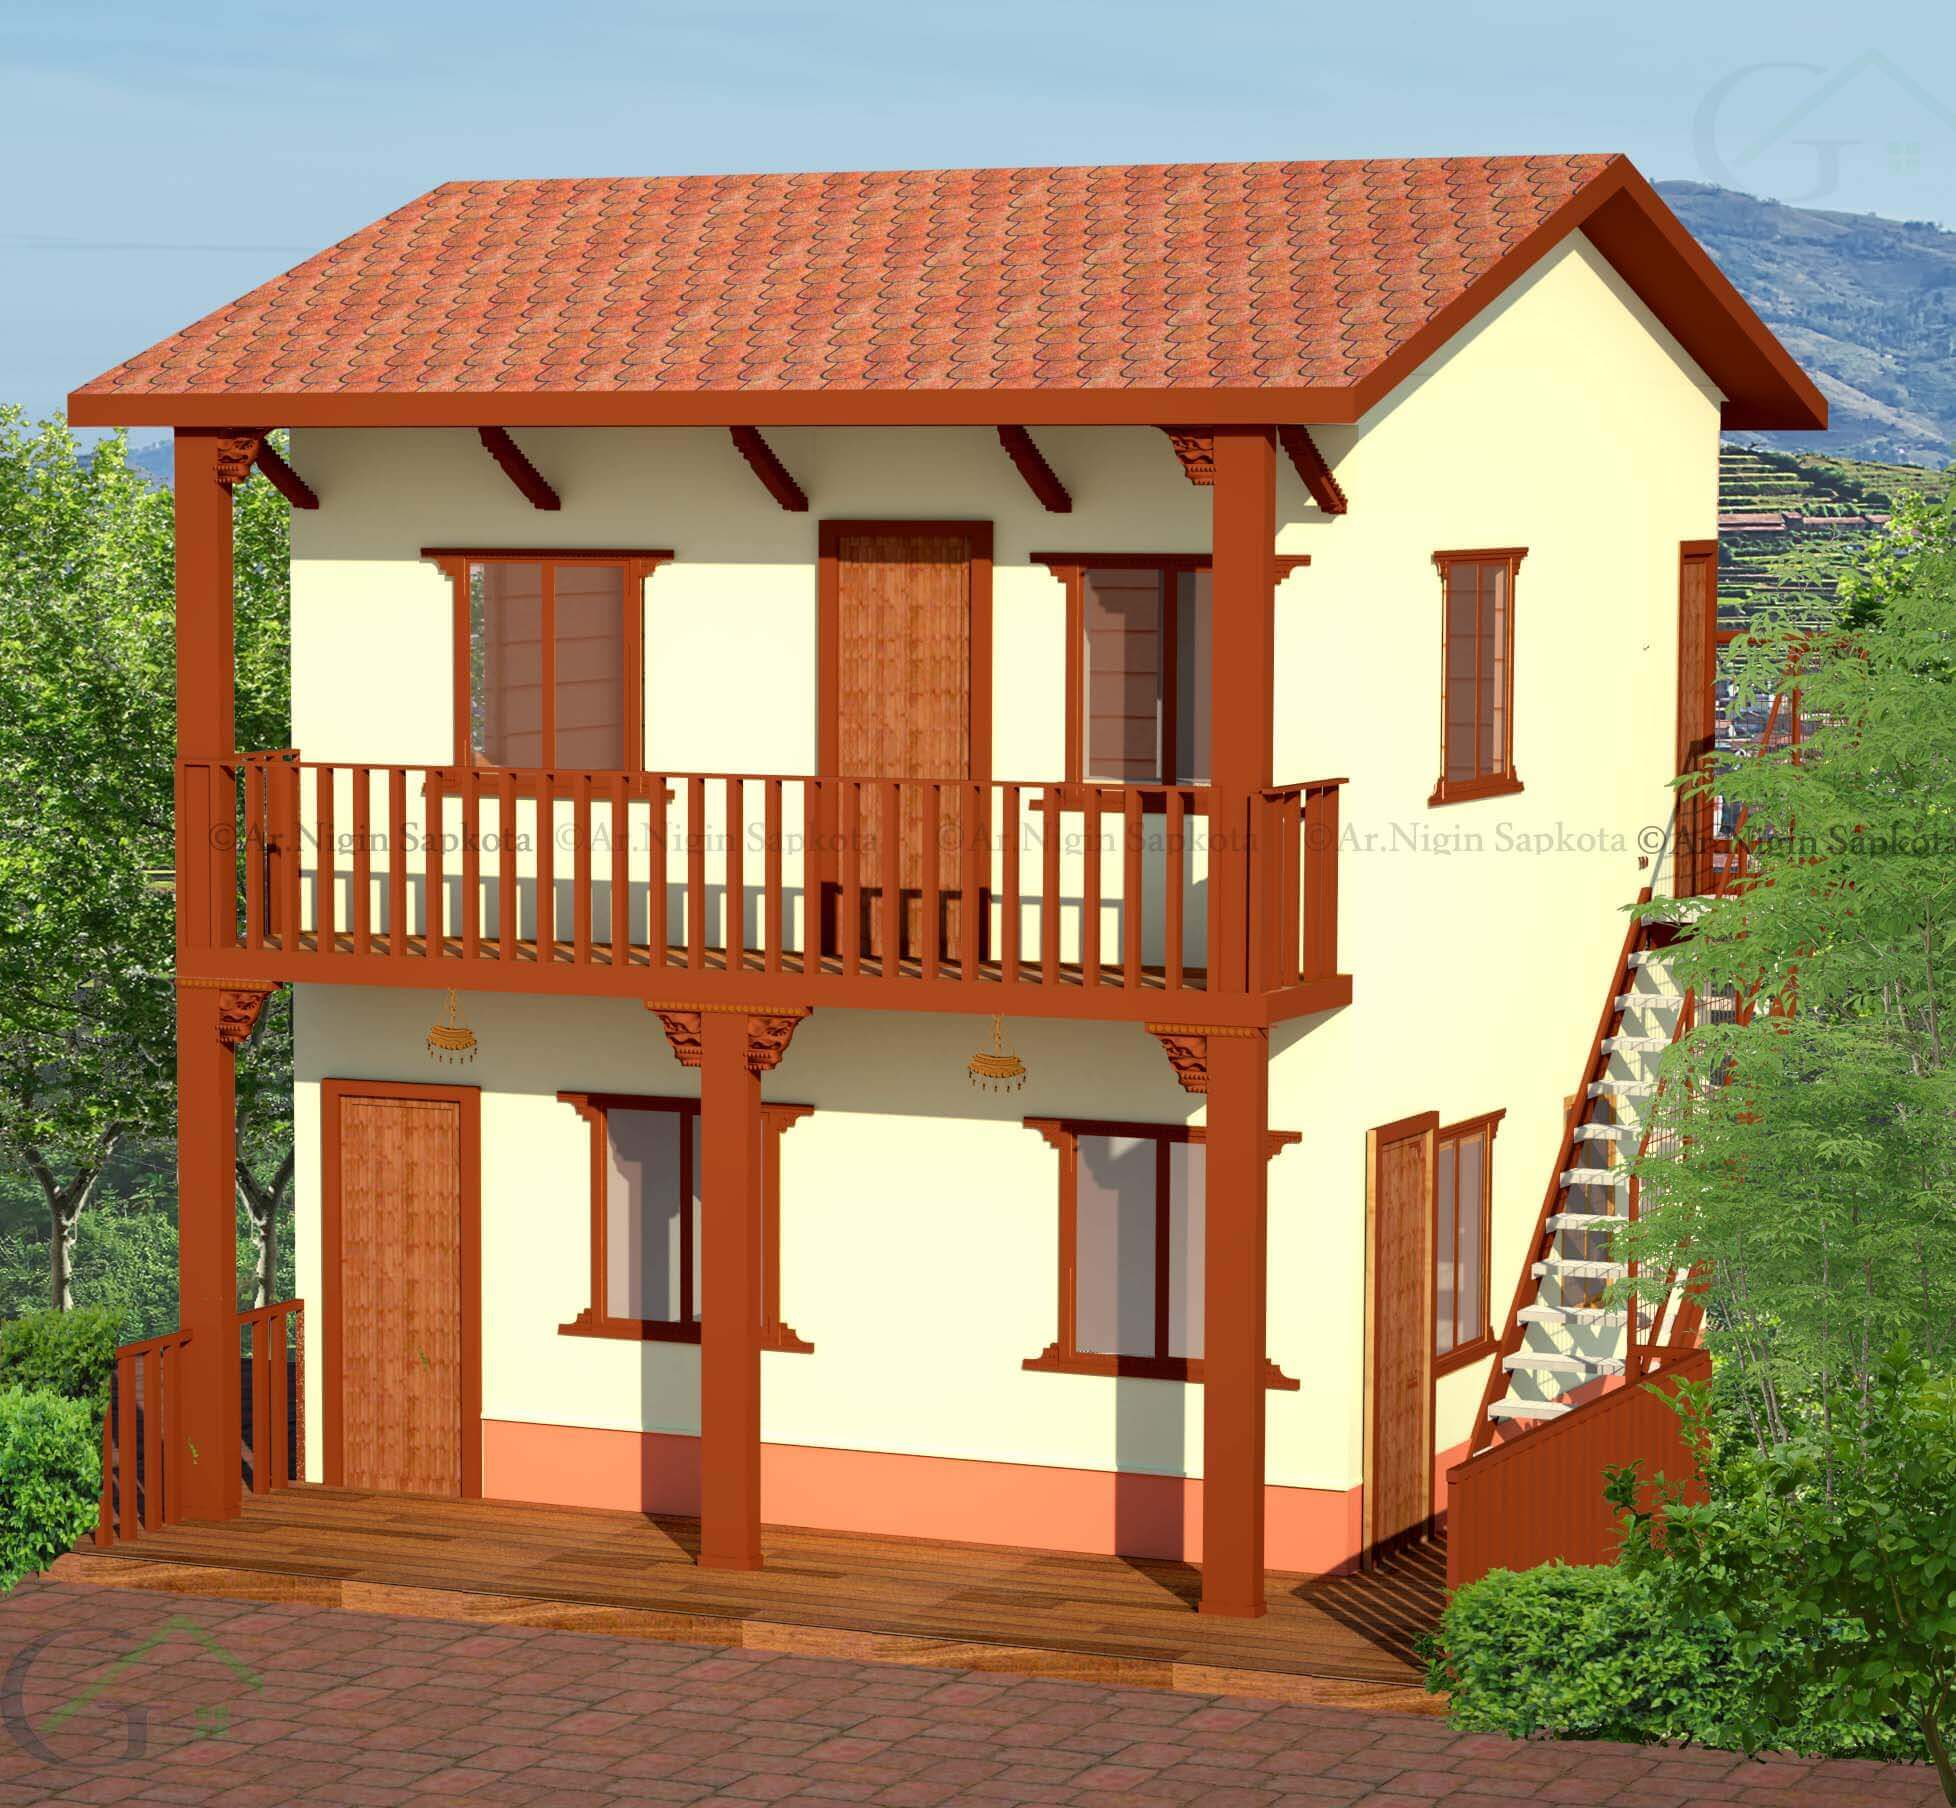 Terrific Steel Structured Prefab Traditional Nepali House Ga Home Interior And Landscaping Ologienasavecom